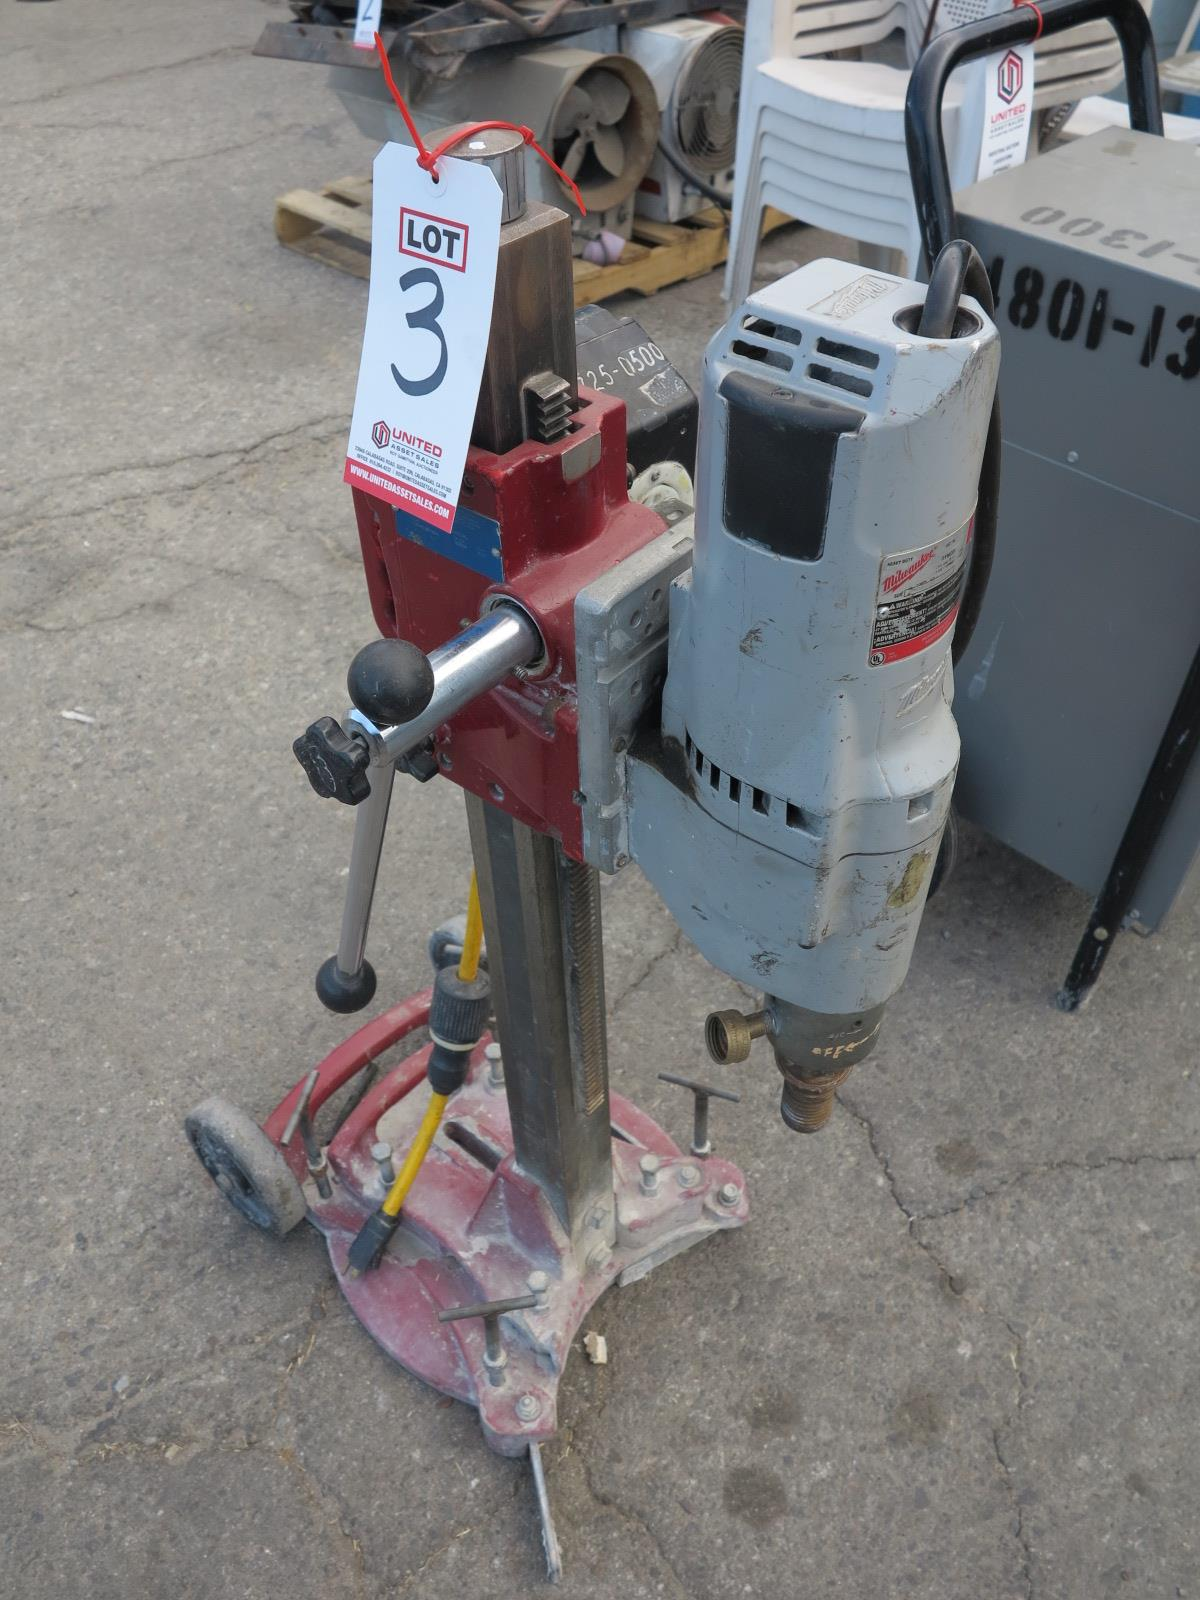 Lot 3 - MILWAUKEE CORE DRILL W/ STAND